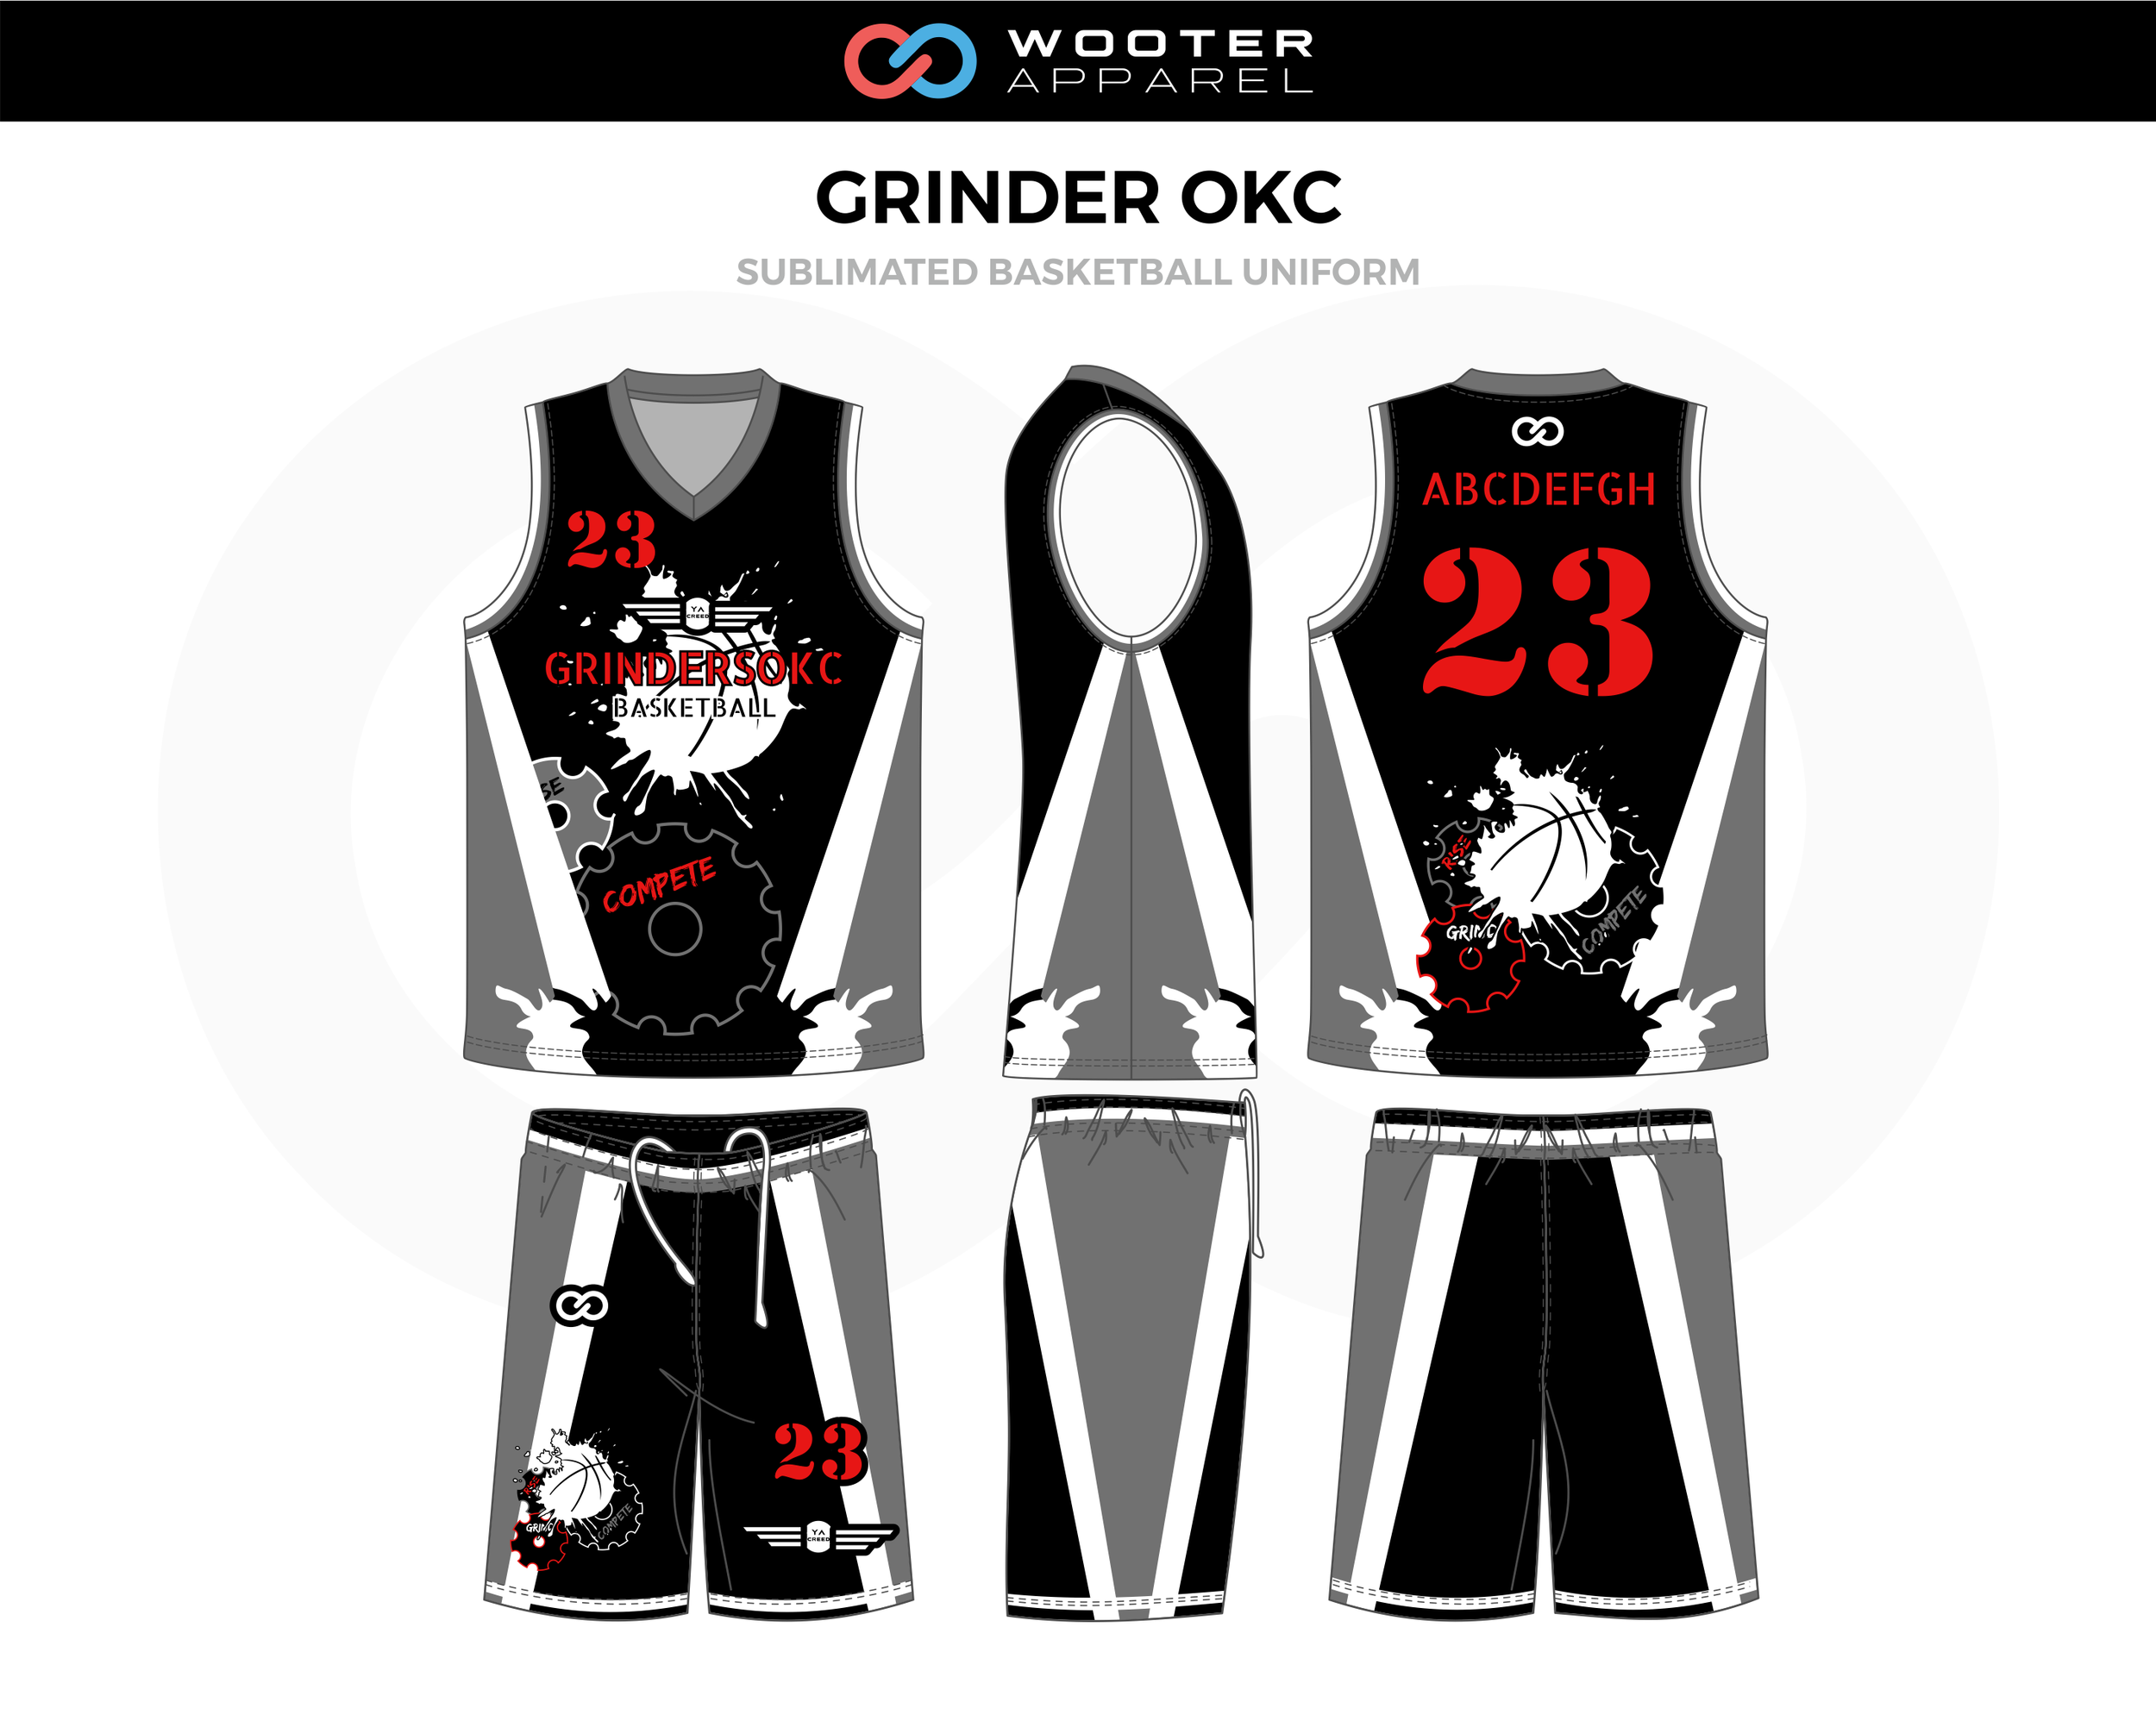 the latest 0ebe3 7c344 Basketball Uniform Designs — Wooter Apparel | Team Uniforms ...